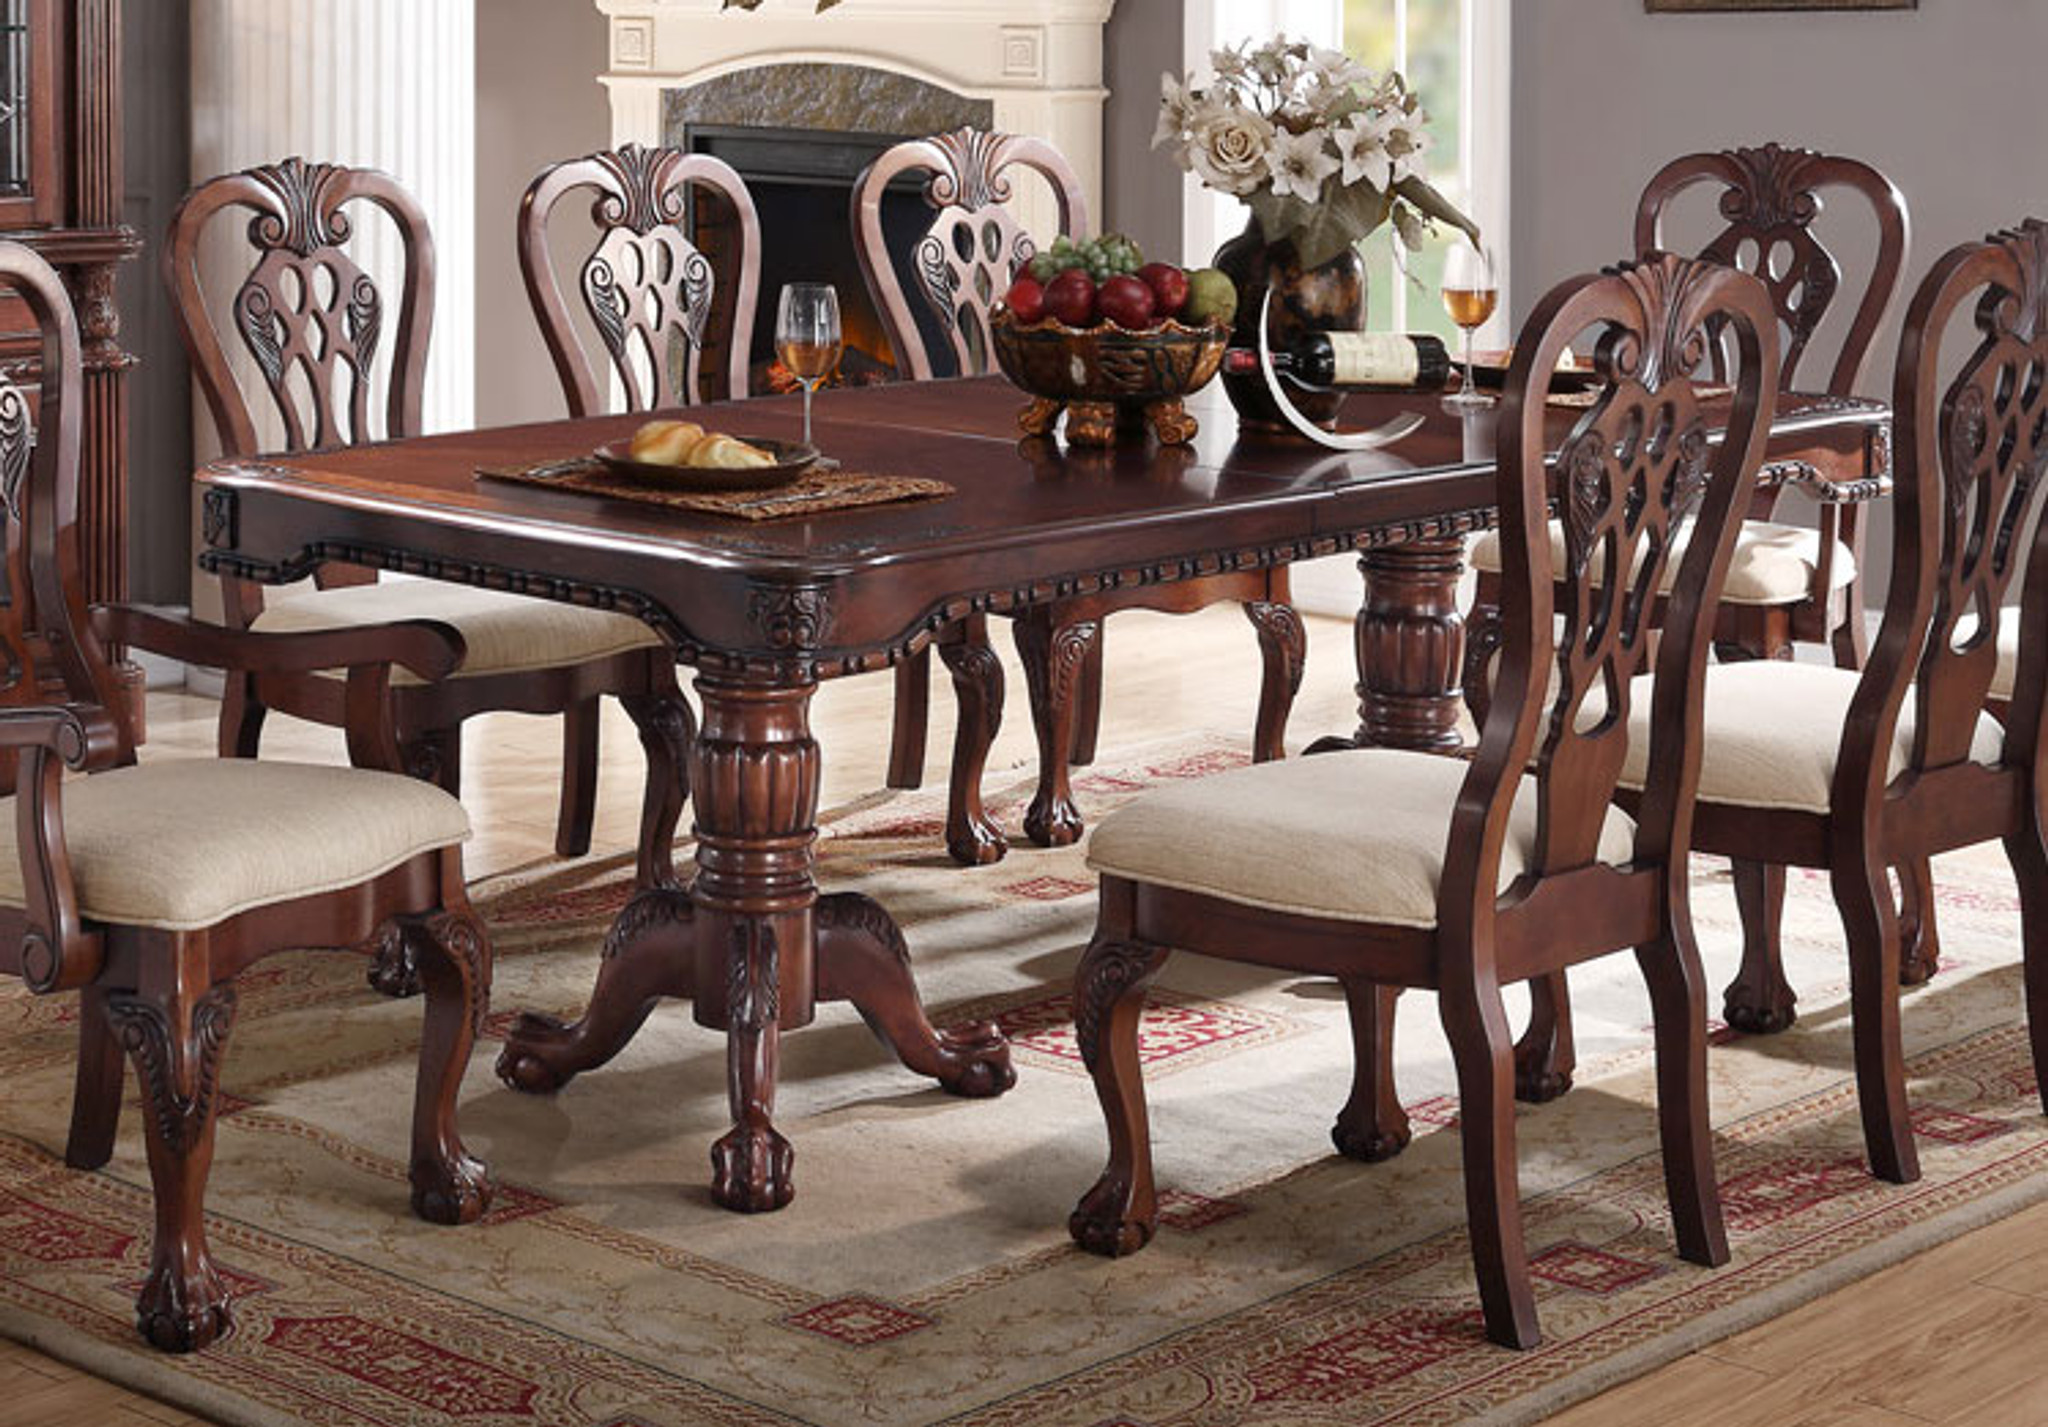 Wondrous Cherry Wood Rectangular Shape Dining Table Caraccident5 Cool Chair Designs And Ideas Caraccident5Info